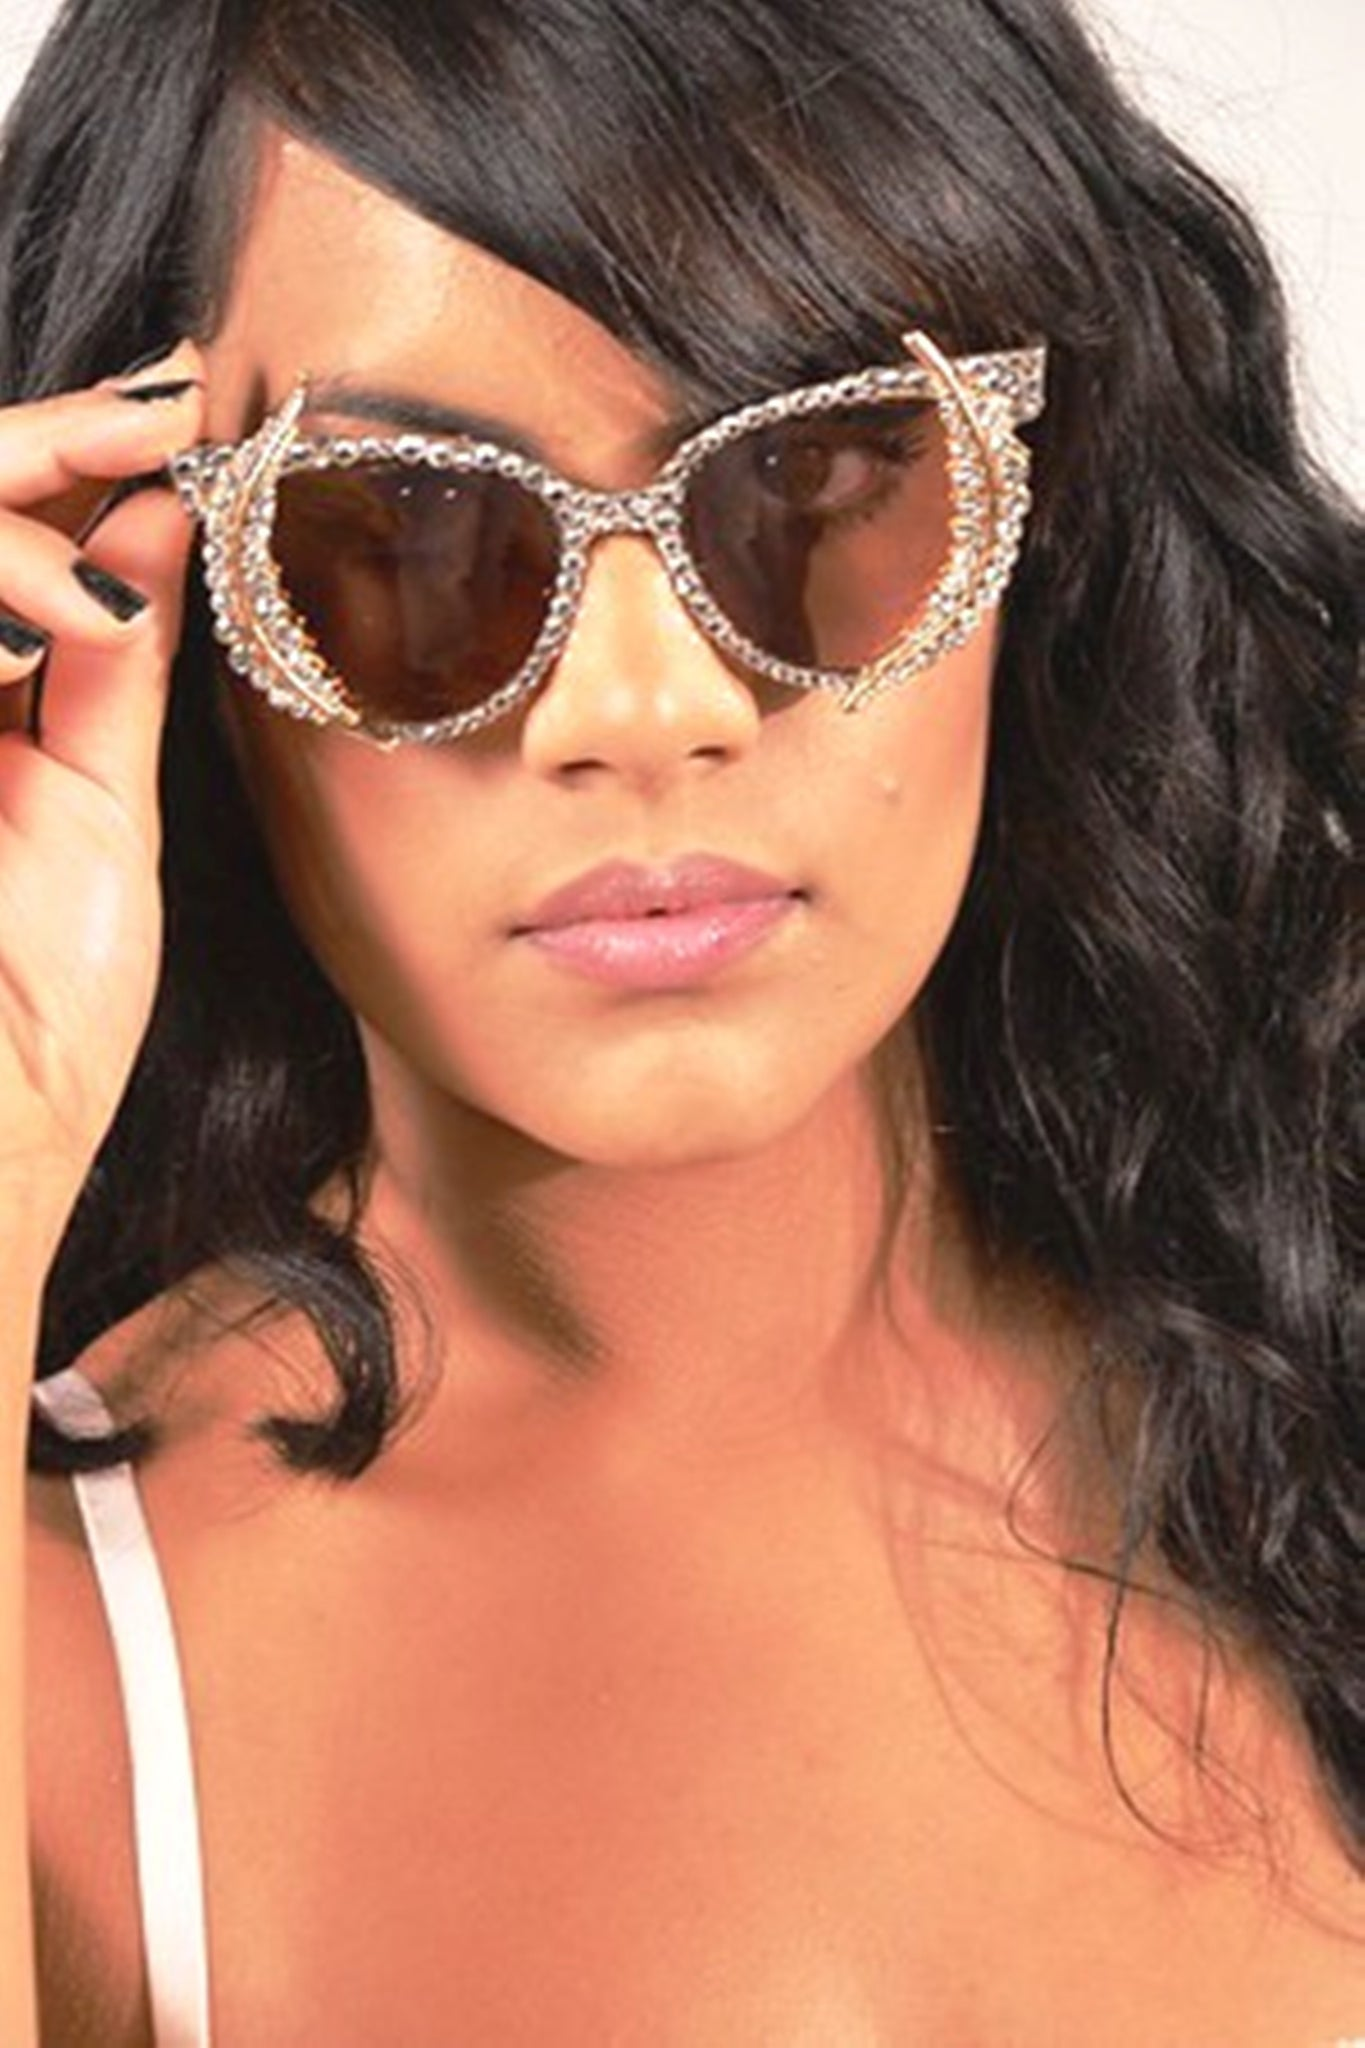 c742b2af54 Crystal Sunglasses- third eye- Spike sunglasses-Cute Fashion Sunglasse –  OMG! Fashion shades